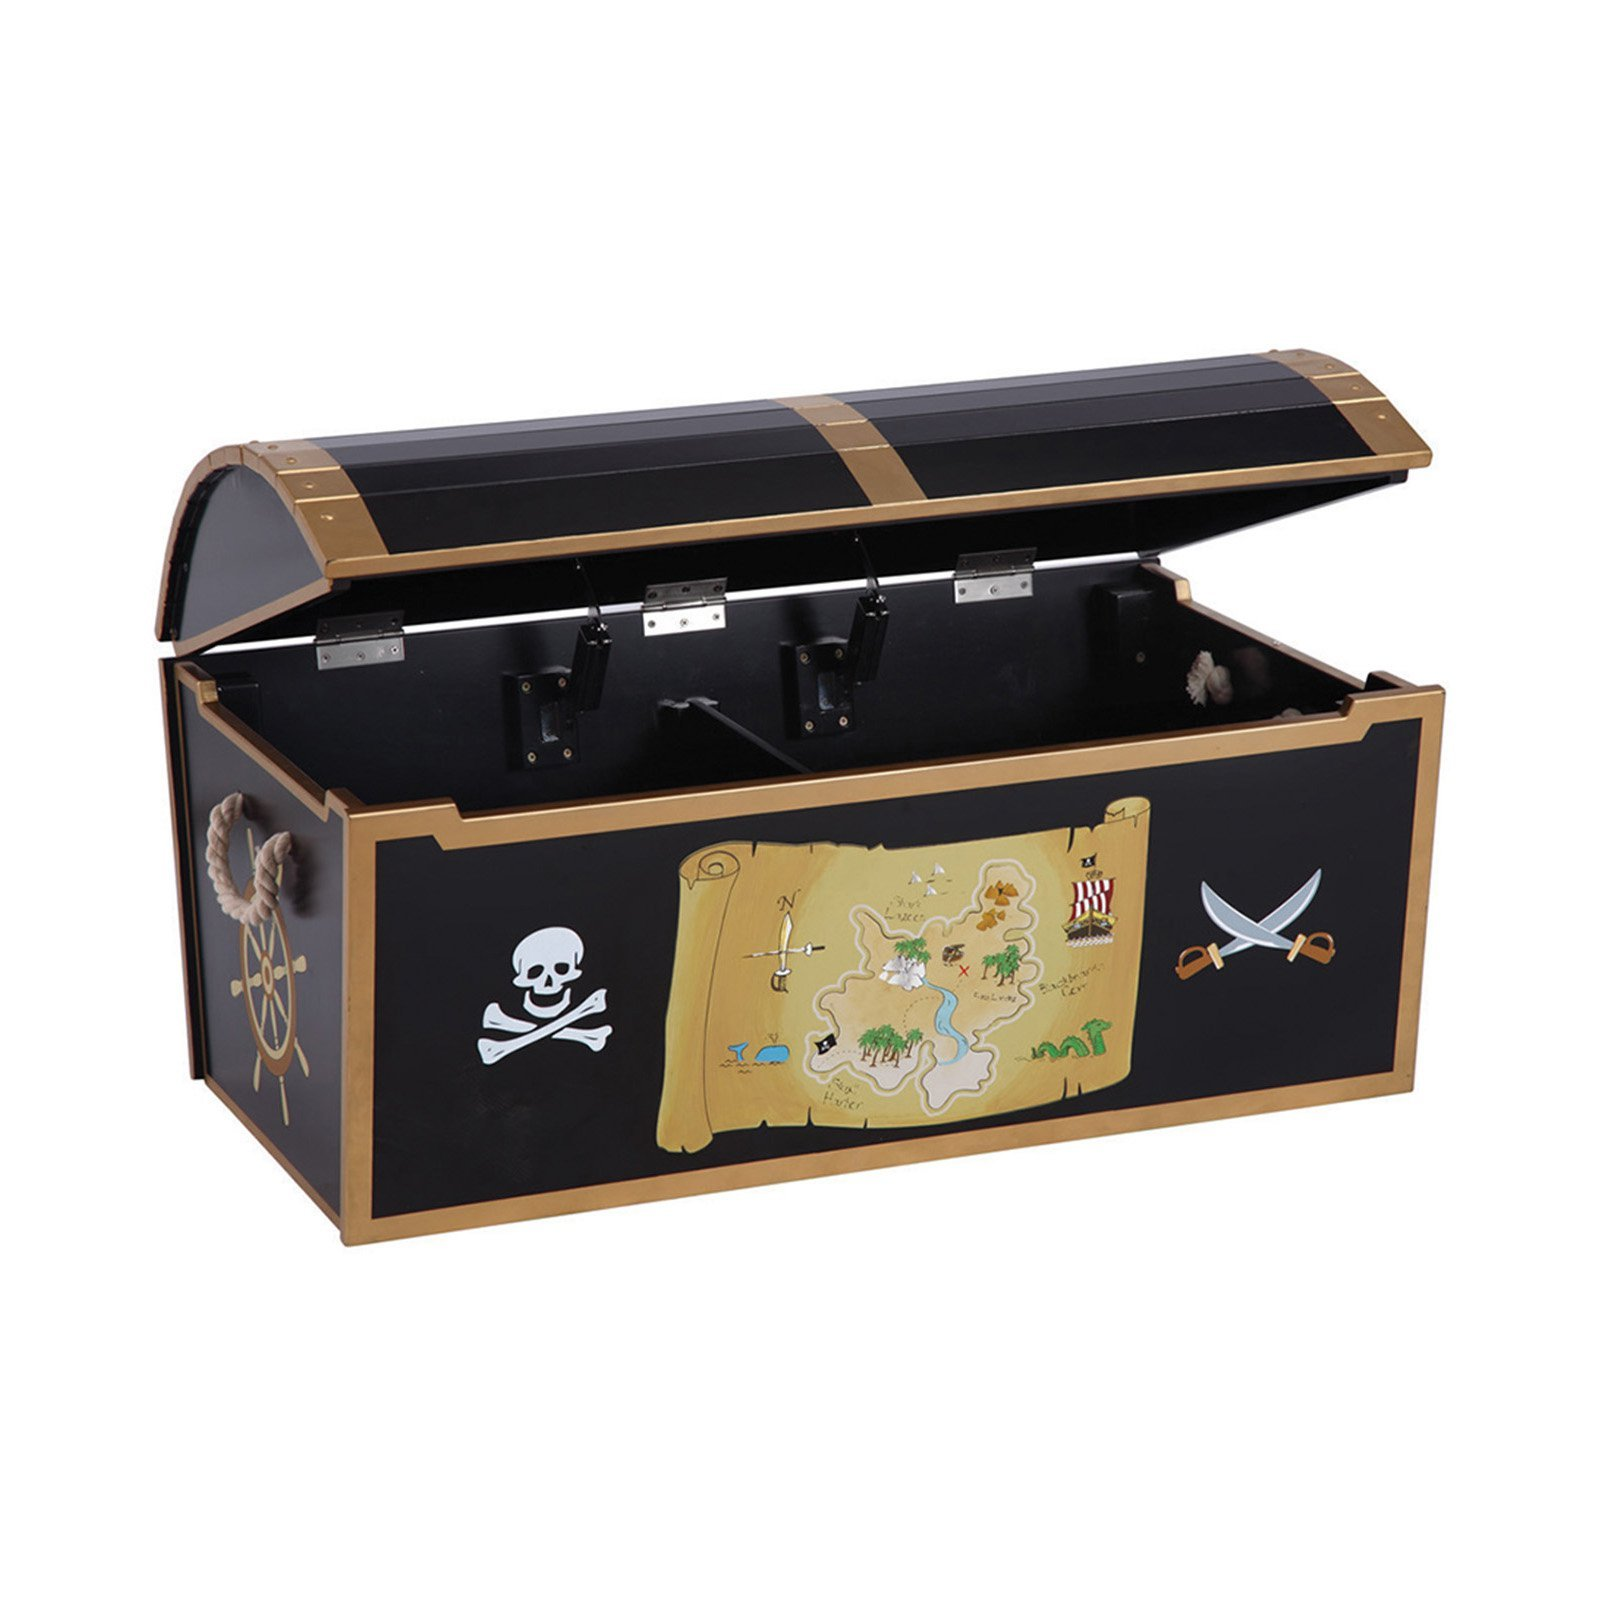 Beau Get Quotations · Most Popular Authentic Hand Painted Kids Wood Play Pirate  Treasure Toy Chest Box Storage Organizer